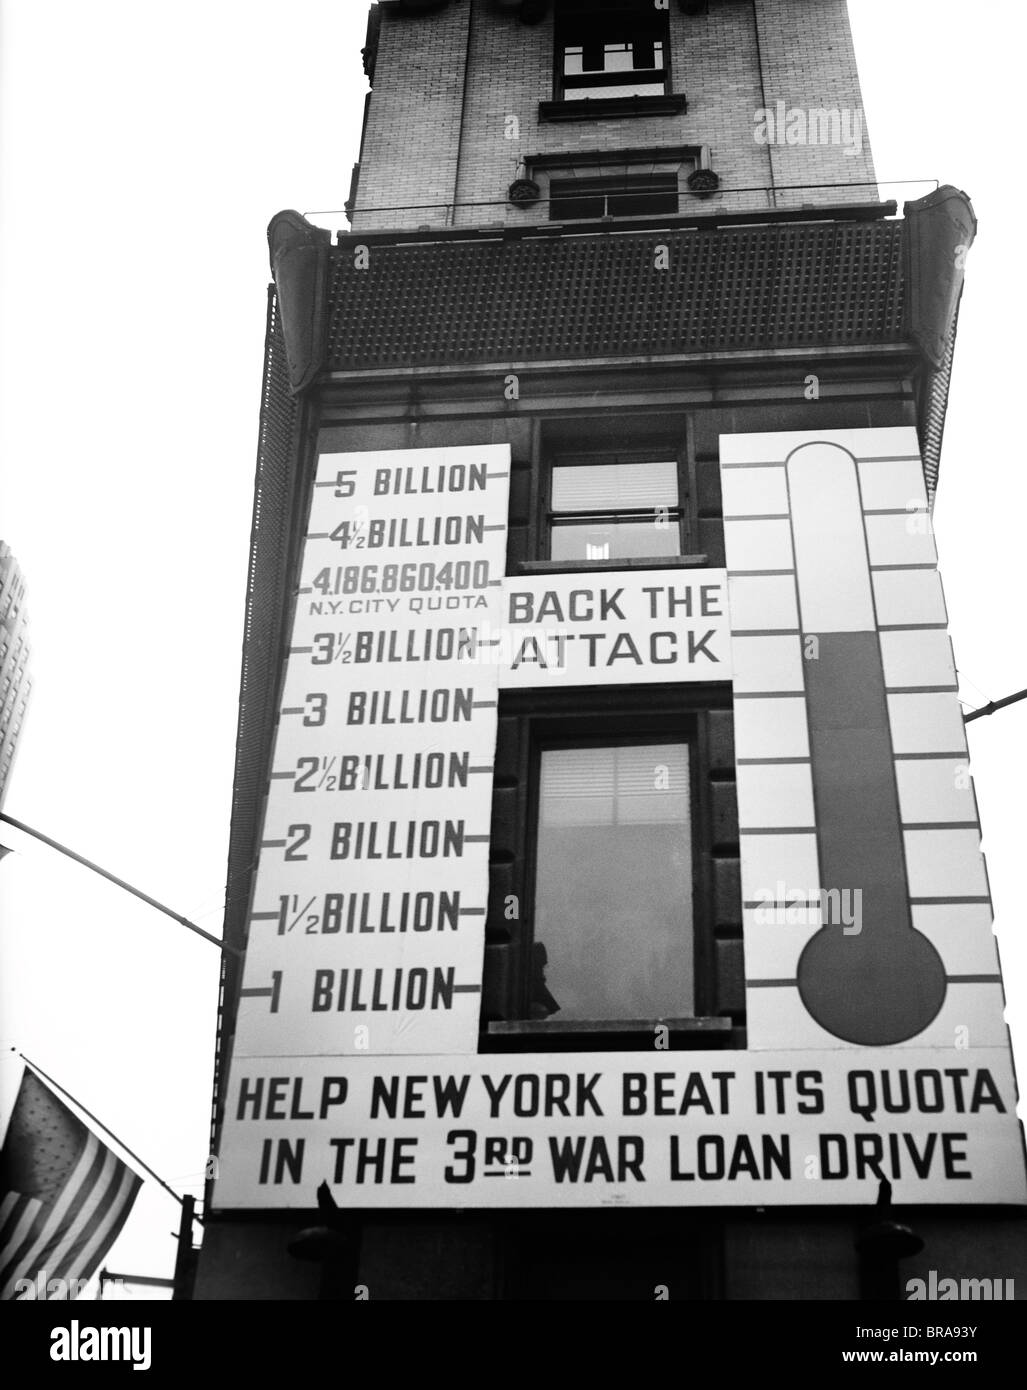 1940s 1943 NEW YORK CITY TIMES SQUARE THERMOMETER SIGN SHOWING RESULTS OF WAR LOAN DRIVE - Stock Image